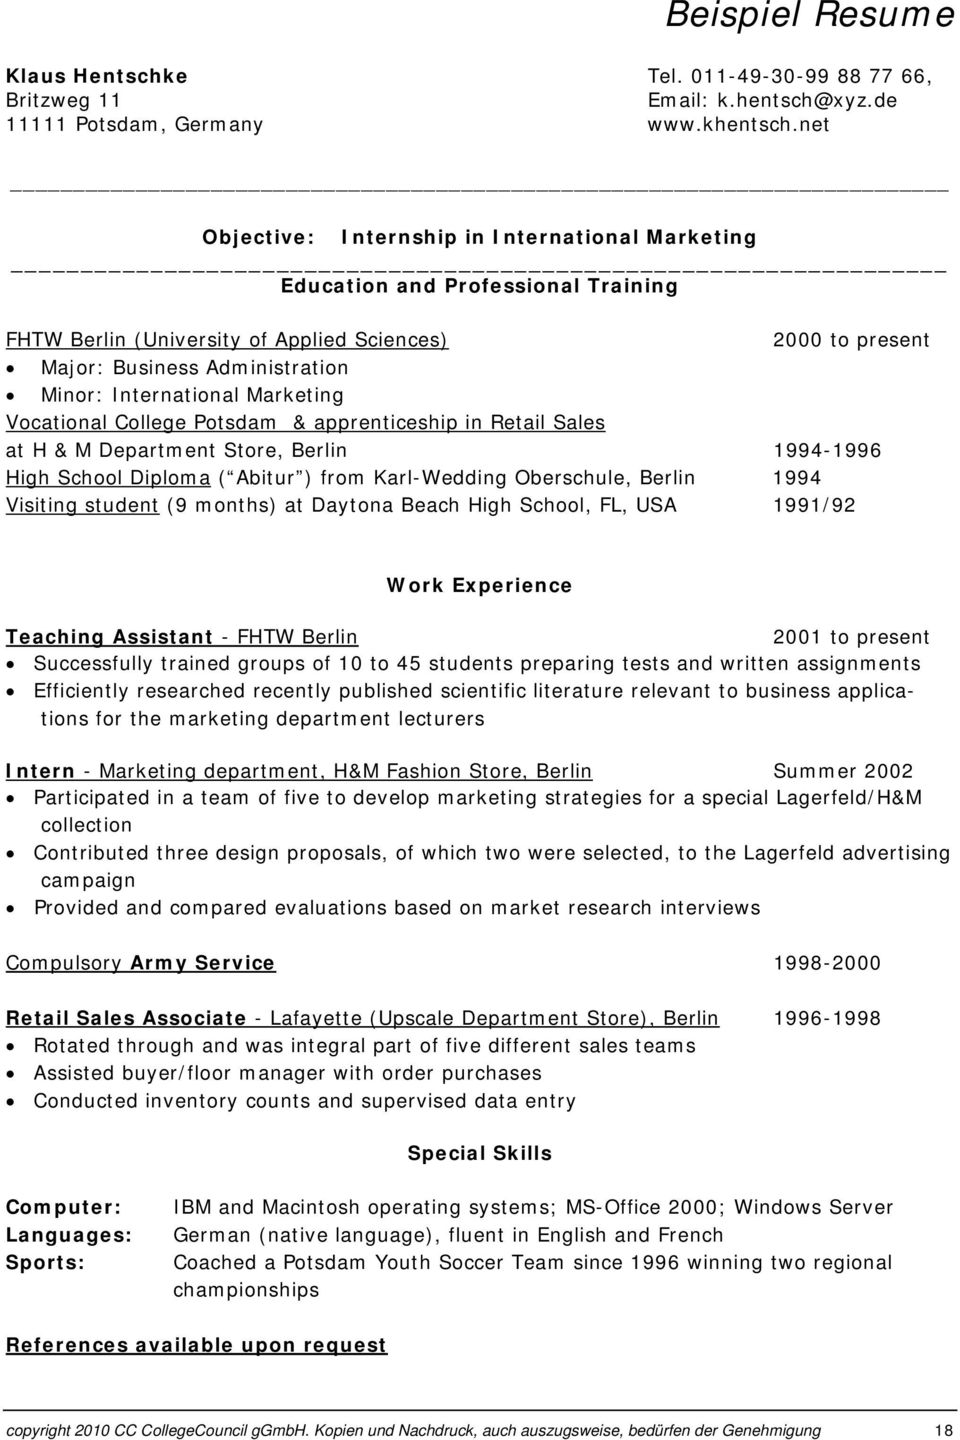 International Marketing Vocational College Potsdam & apprenticeship in Retail Sales at H & M Department Store, Berlin 1994-1996 High School Diploma ( Abitur ) from Karl-Wedding Oberschule, Berlin